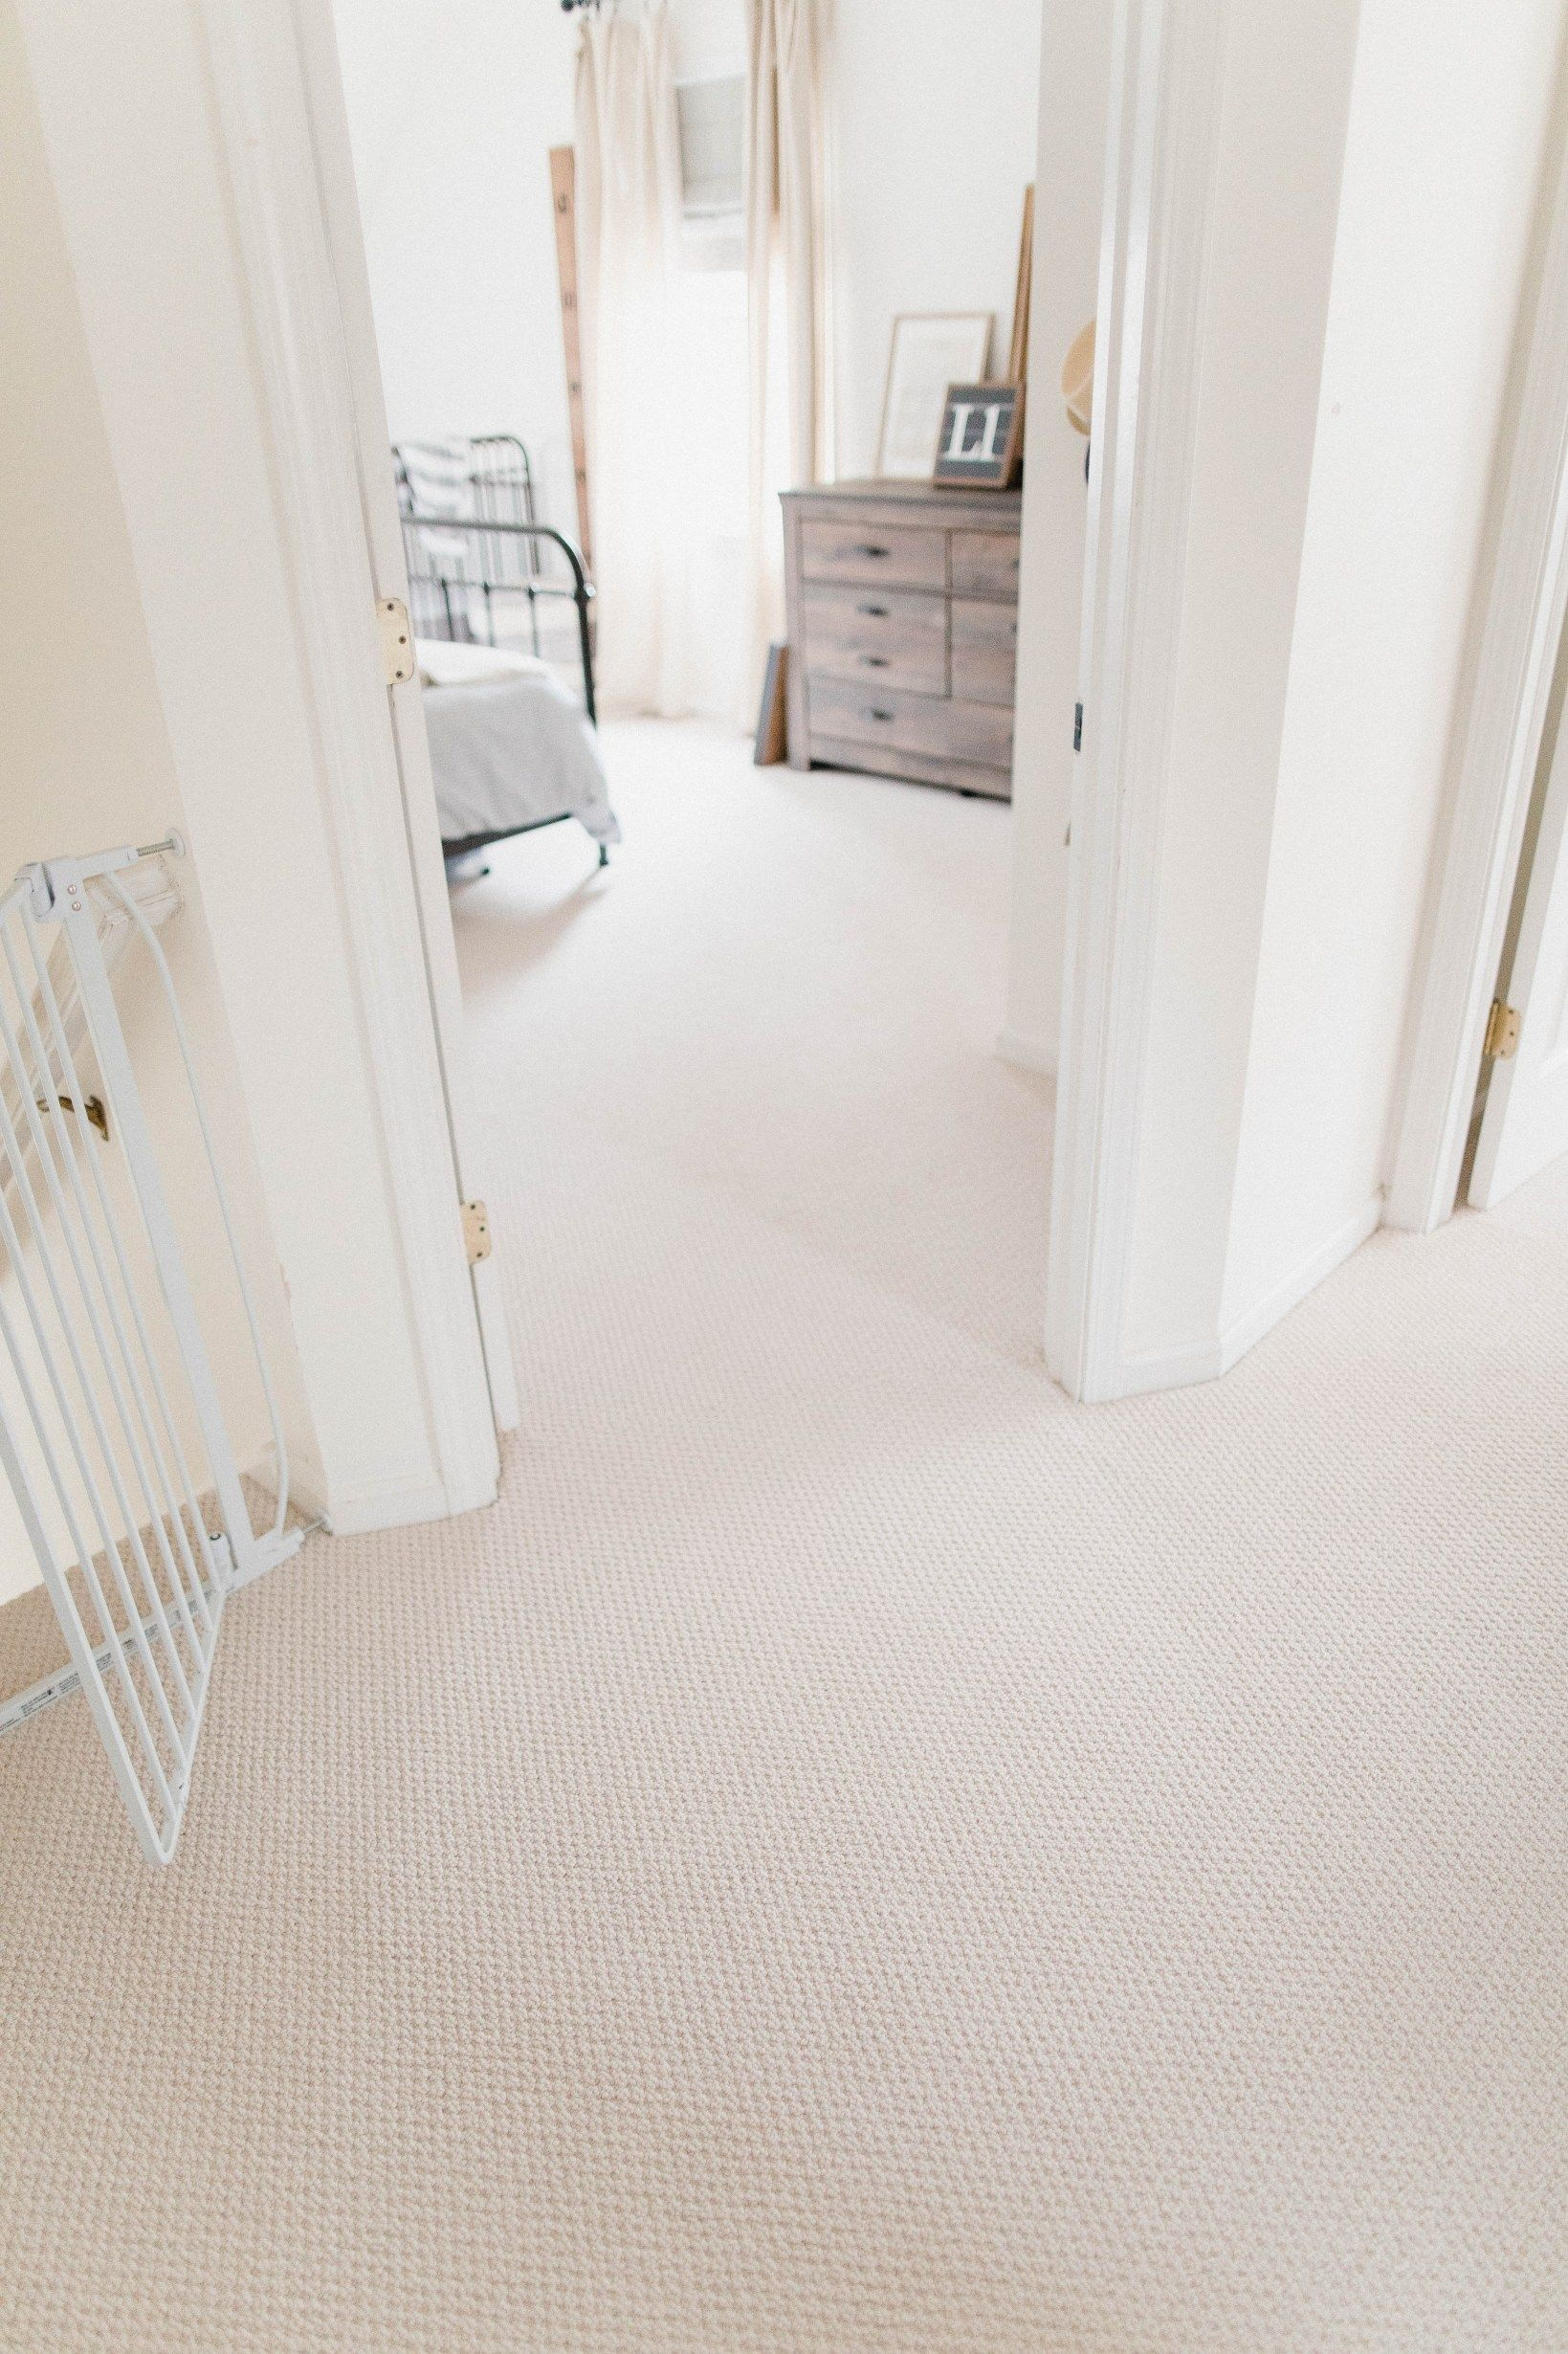 Why We Installed Wall-to-Wall Carpeting Upstairs – Lauren McBride